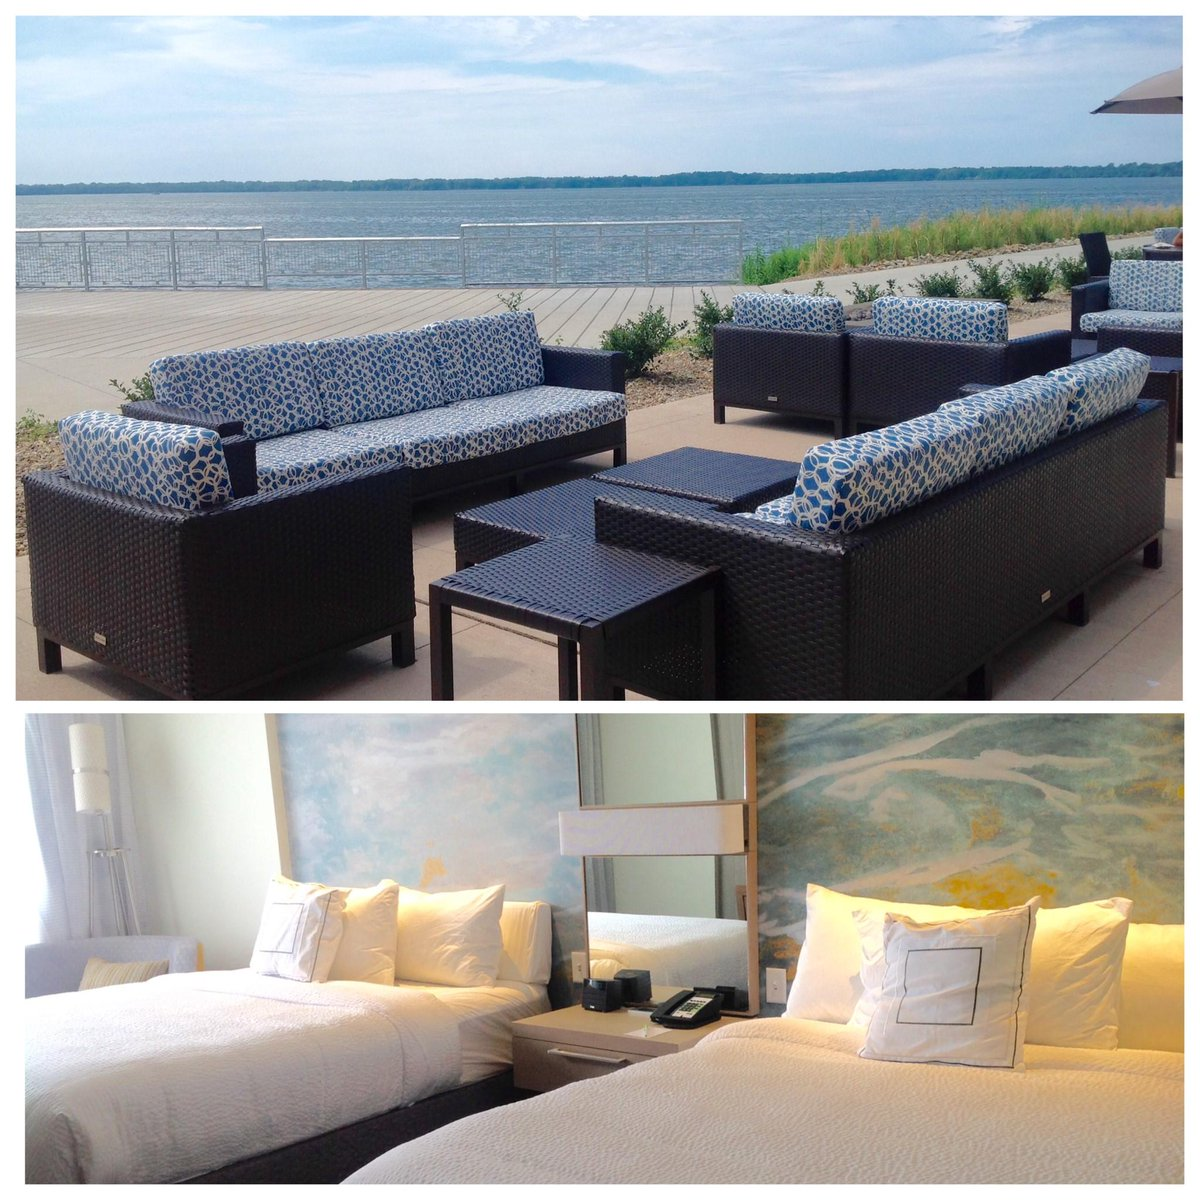 Beautiful views outside & tranquil rooms inside at the new Courtyard by Marriott Erie Bayfront - #AAAInspector 79 https://t.co/YFyXW1lzK5